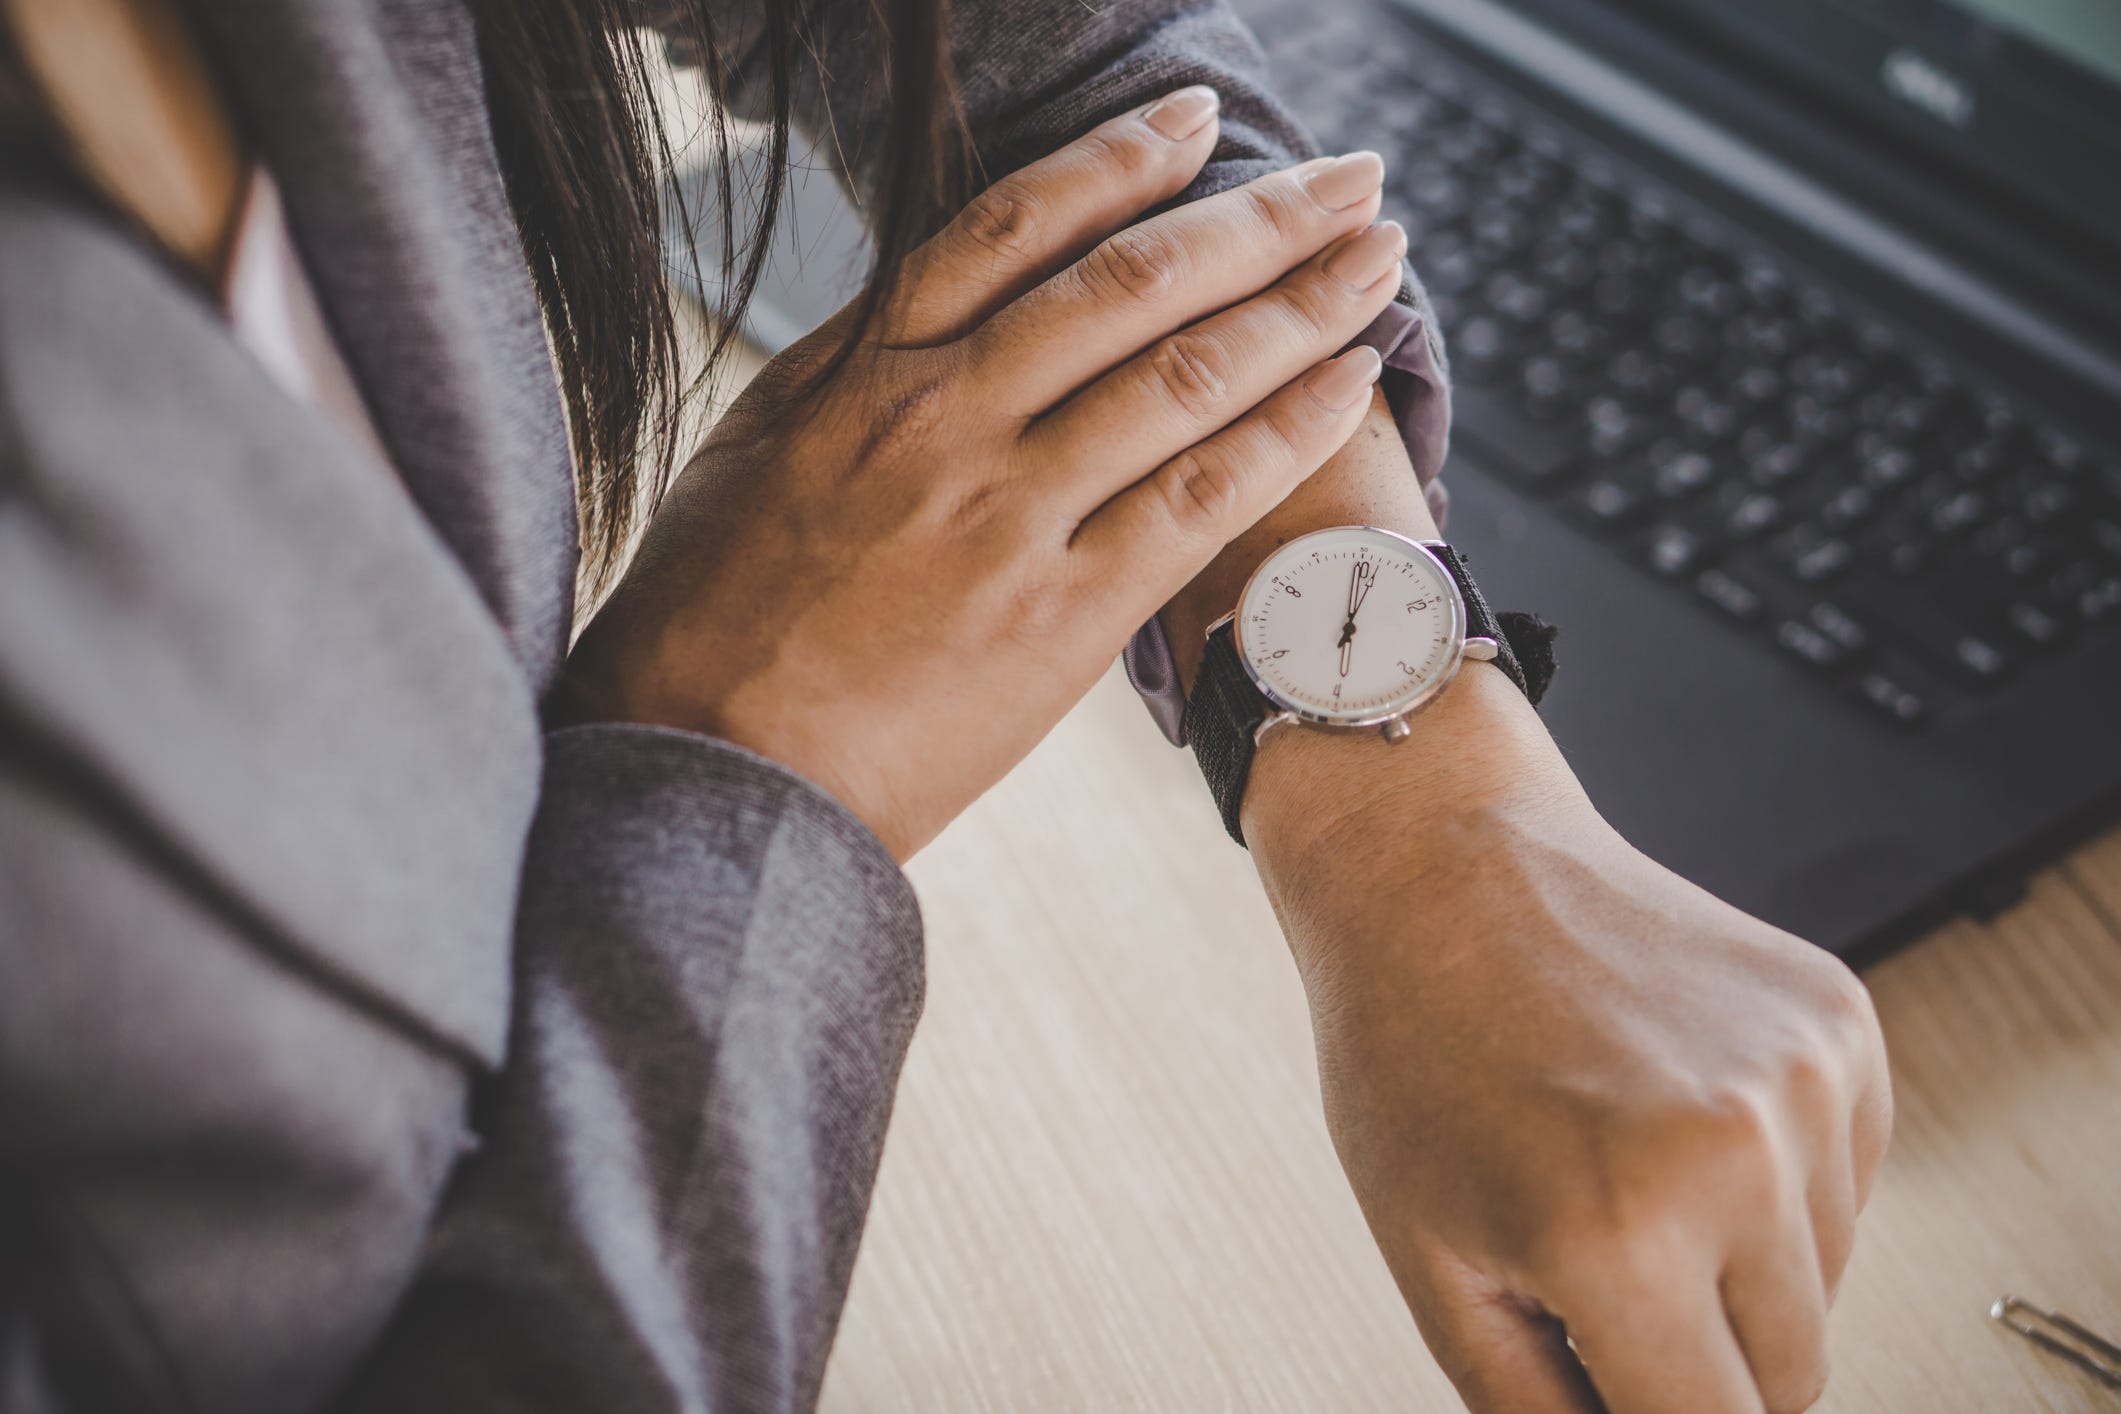 Tips for time management and how to avoid being late